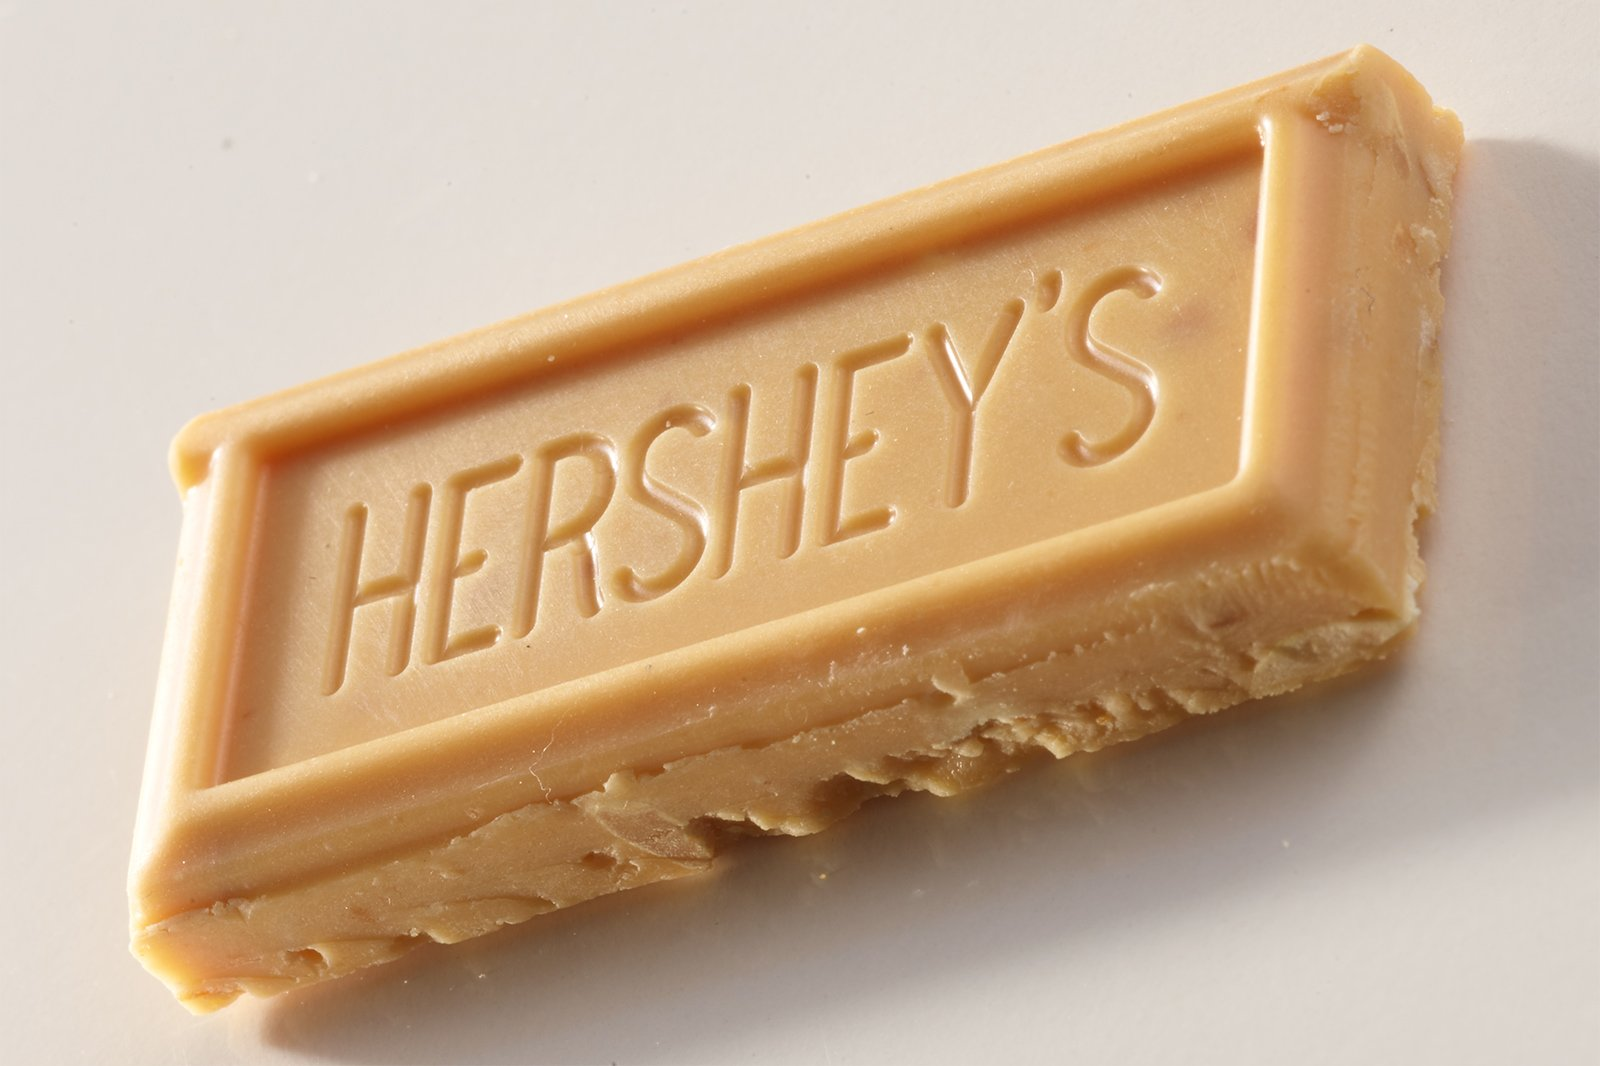 Retouching | Hershey's Pretzel Peanut Chocolate Before Image